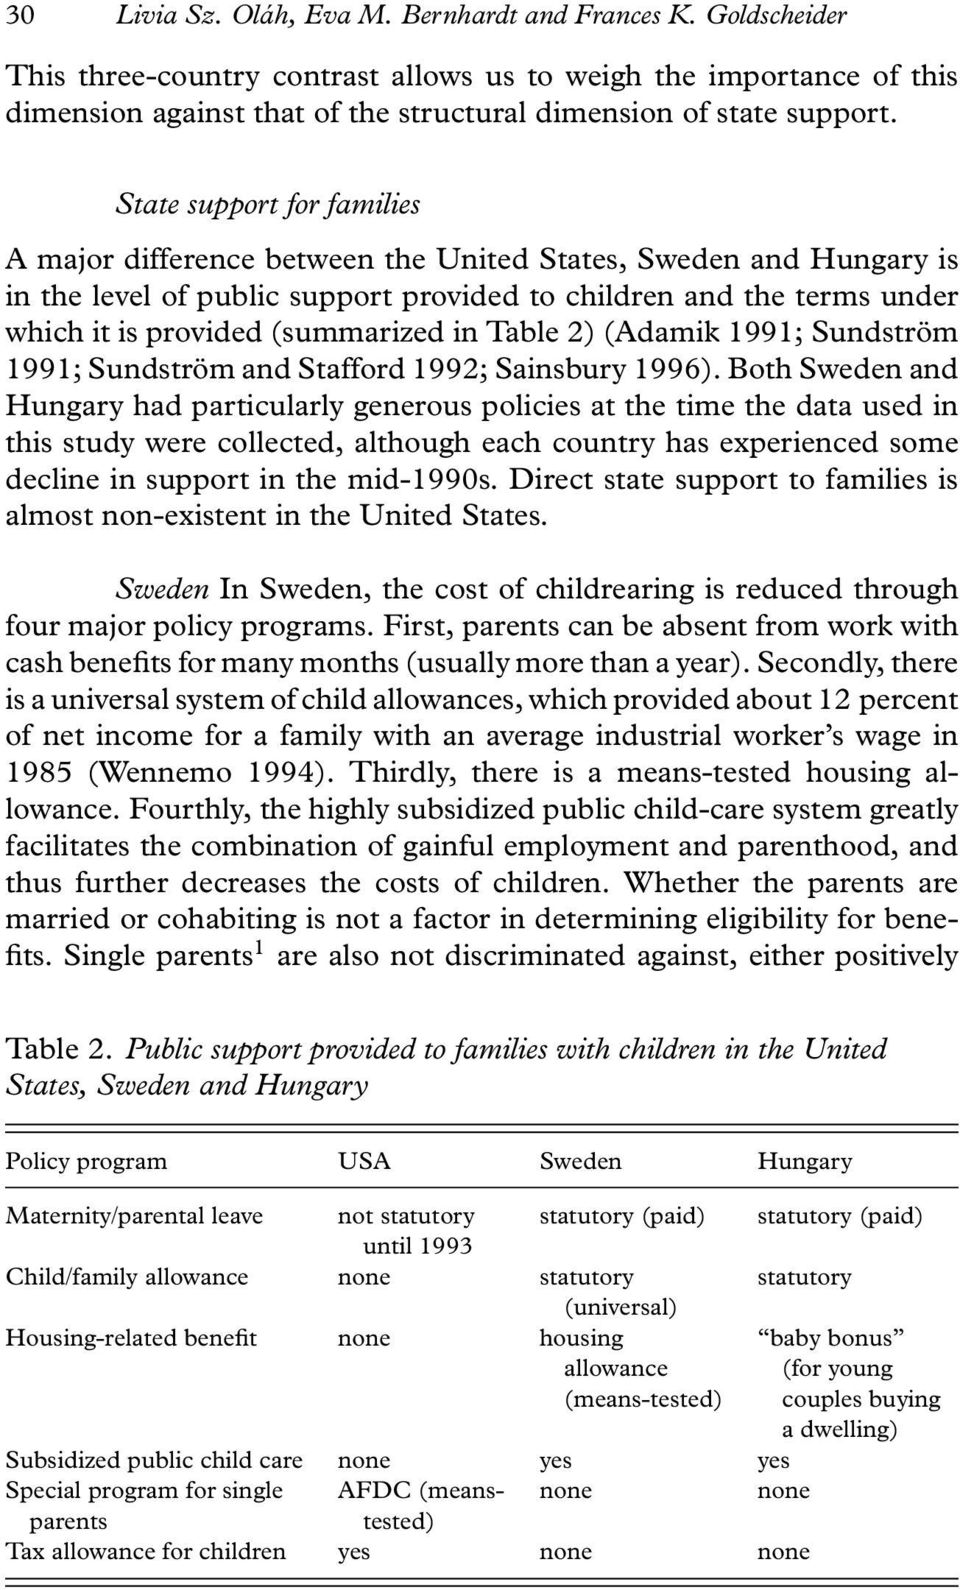 State support for families A major difference between the United States, Sweden and Hungary is in the level of public support provided to children and the terms under which it is provided (summarized